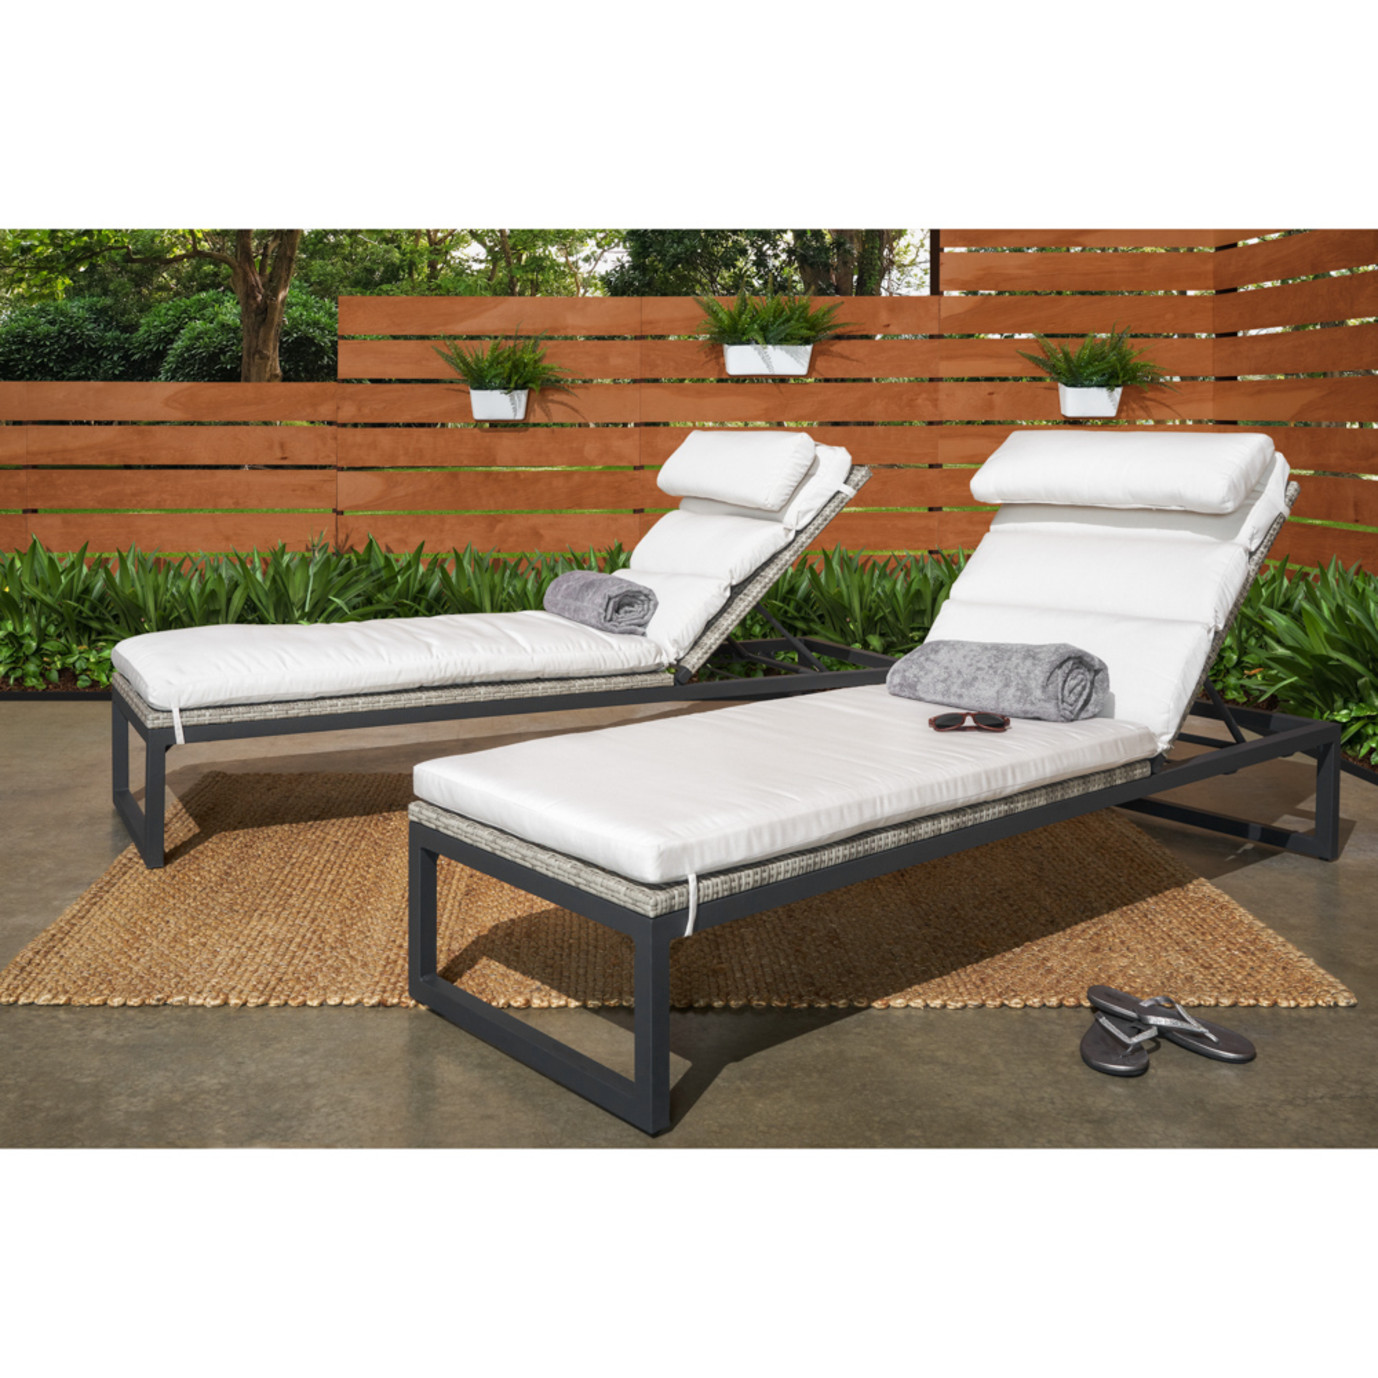 Milo™ Gray Chaise Lounges - Moroccan Cream